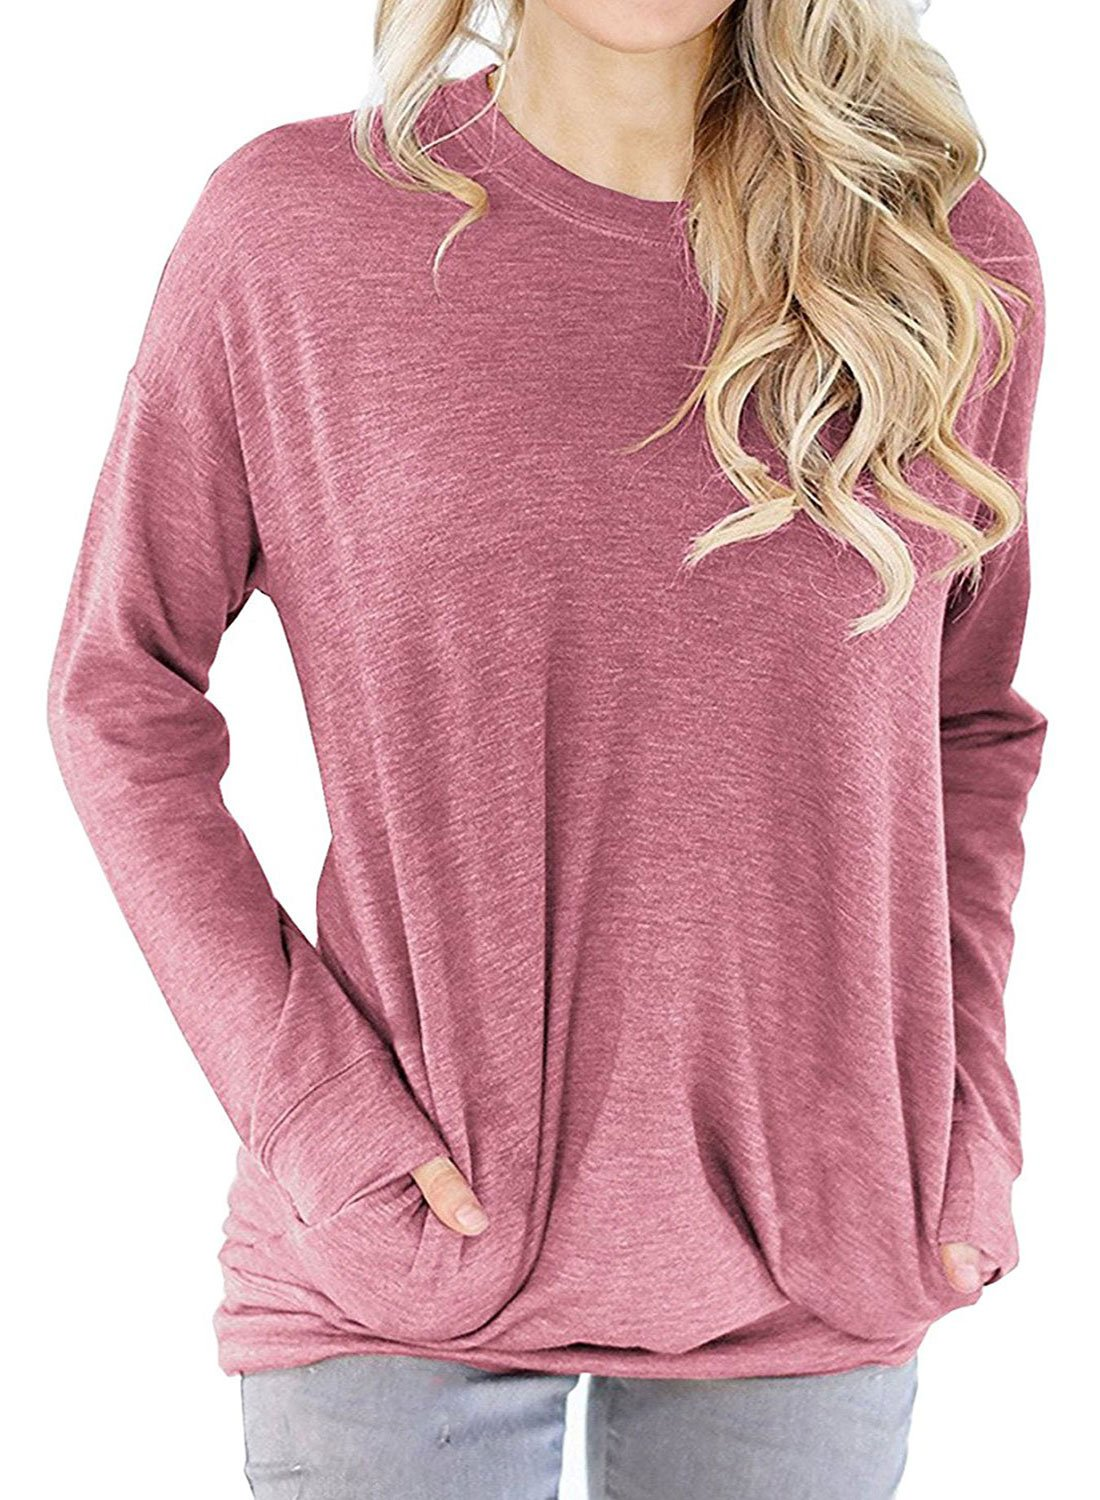 Lyxinpf Women's Casual Round Neck Sweatshirts Slouchy Pockets Pullover Long Sleeve Loose T Shirts Blouses Tops Light Red S